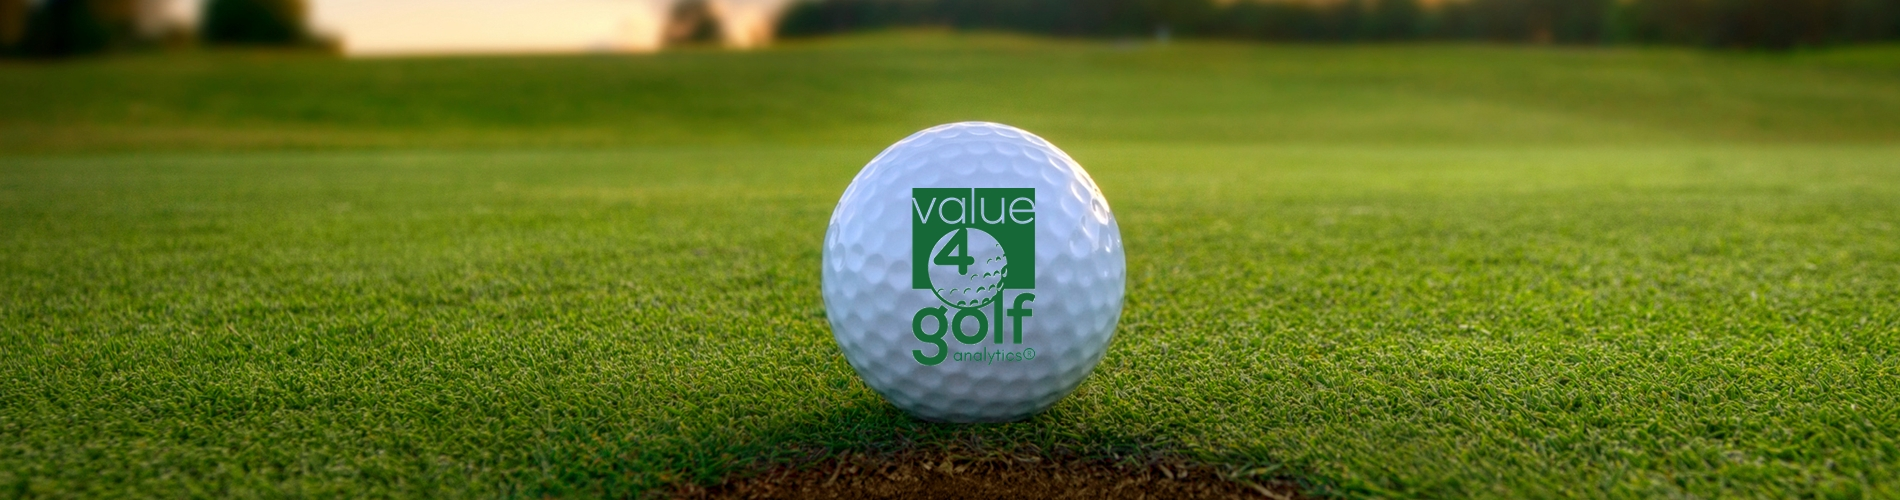 value4golf analytics®